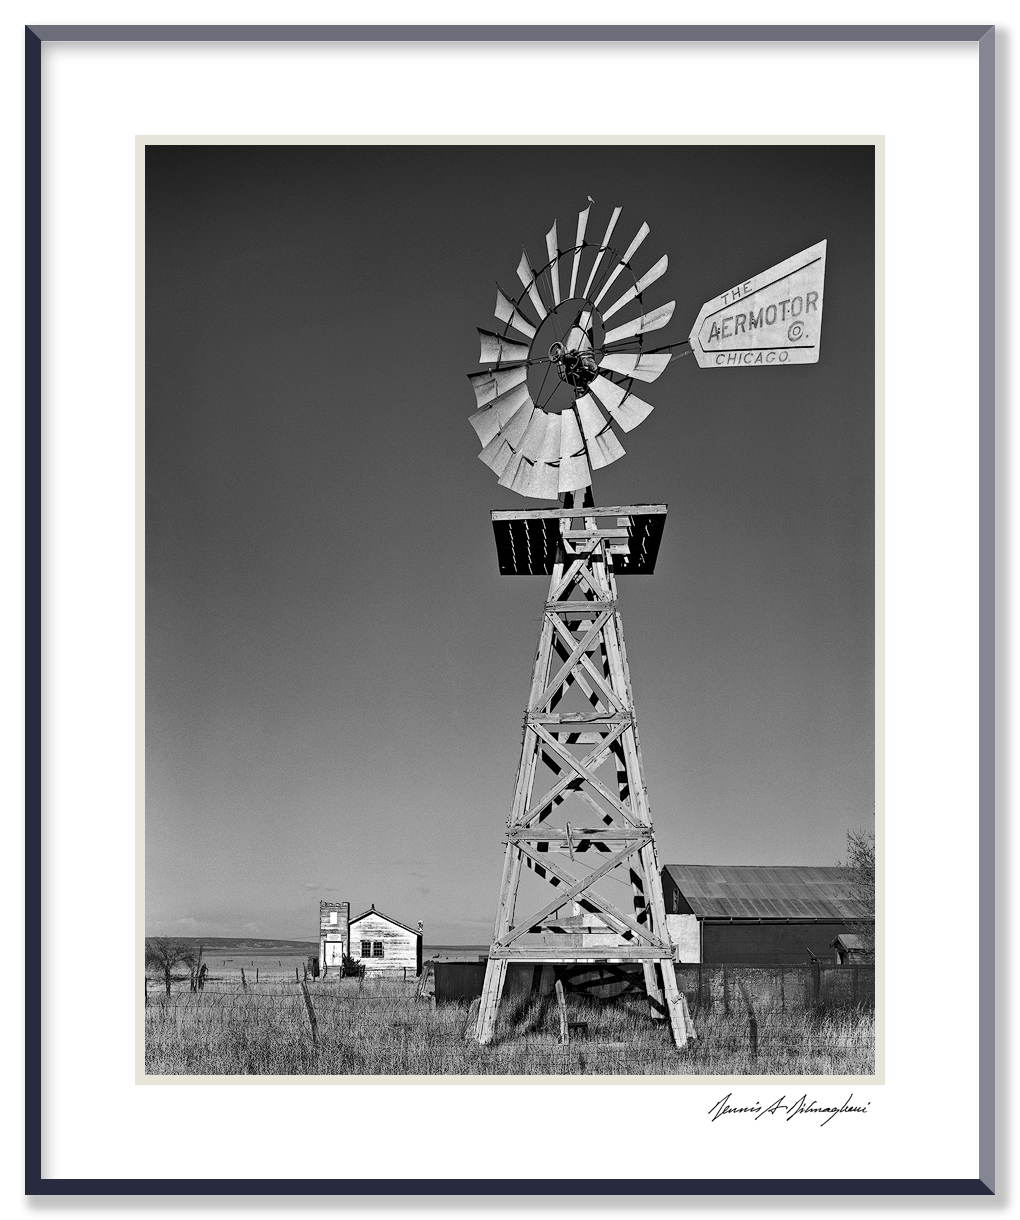 Aermotor Windmill - Claunch, New Mexico, ca. 1976   - Bird's Eye view from atop the windmill blades  Claunch is a near ghost town - a relic of pinto bean farming - yet it survives today. Population 18 in recent census. The Community Church is the white building in the background. The surrounding prairie is windswept and desolate.